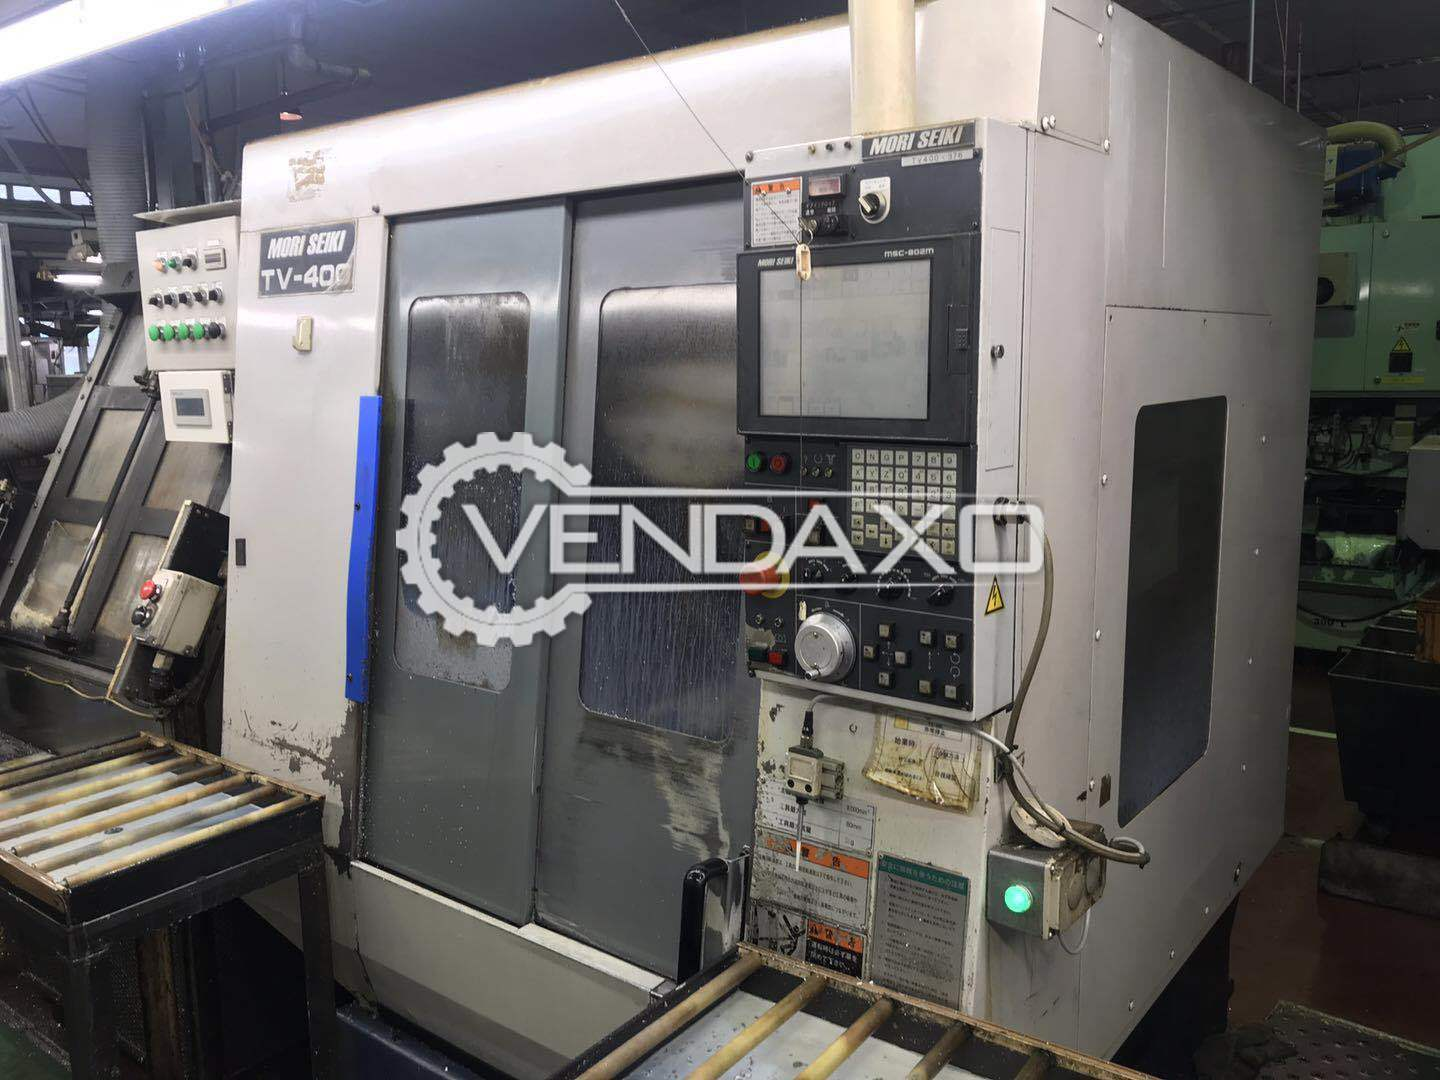 MORISEIKI TV-400 CNC Vertical Machining Center - Table Size - 700 x 400 mm